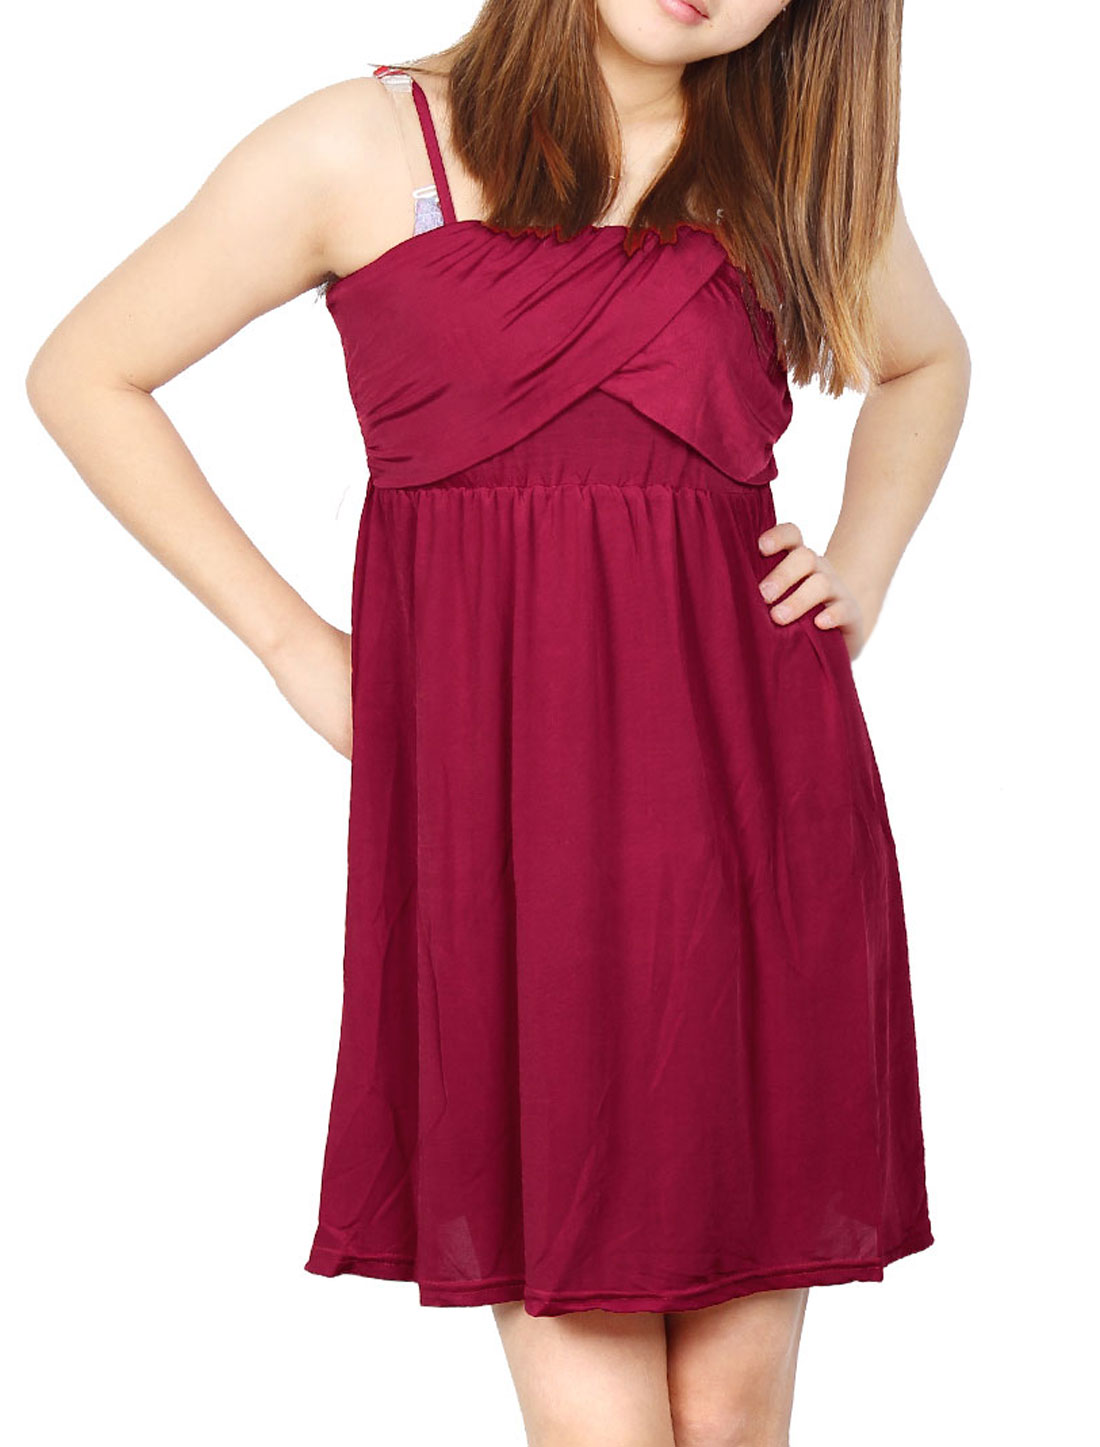 Dark Red Front Cross Ruched Smooth Adjustable Slip Dress XS